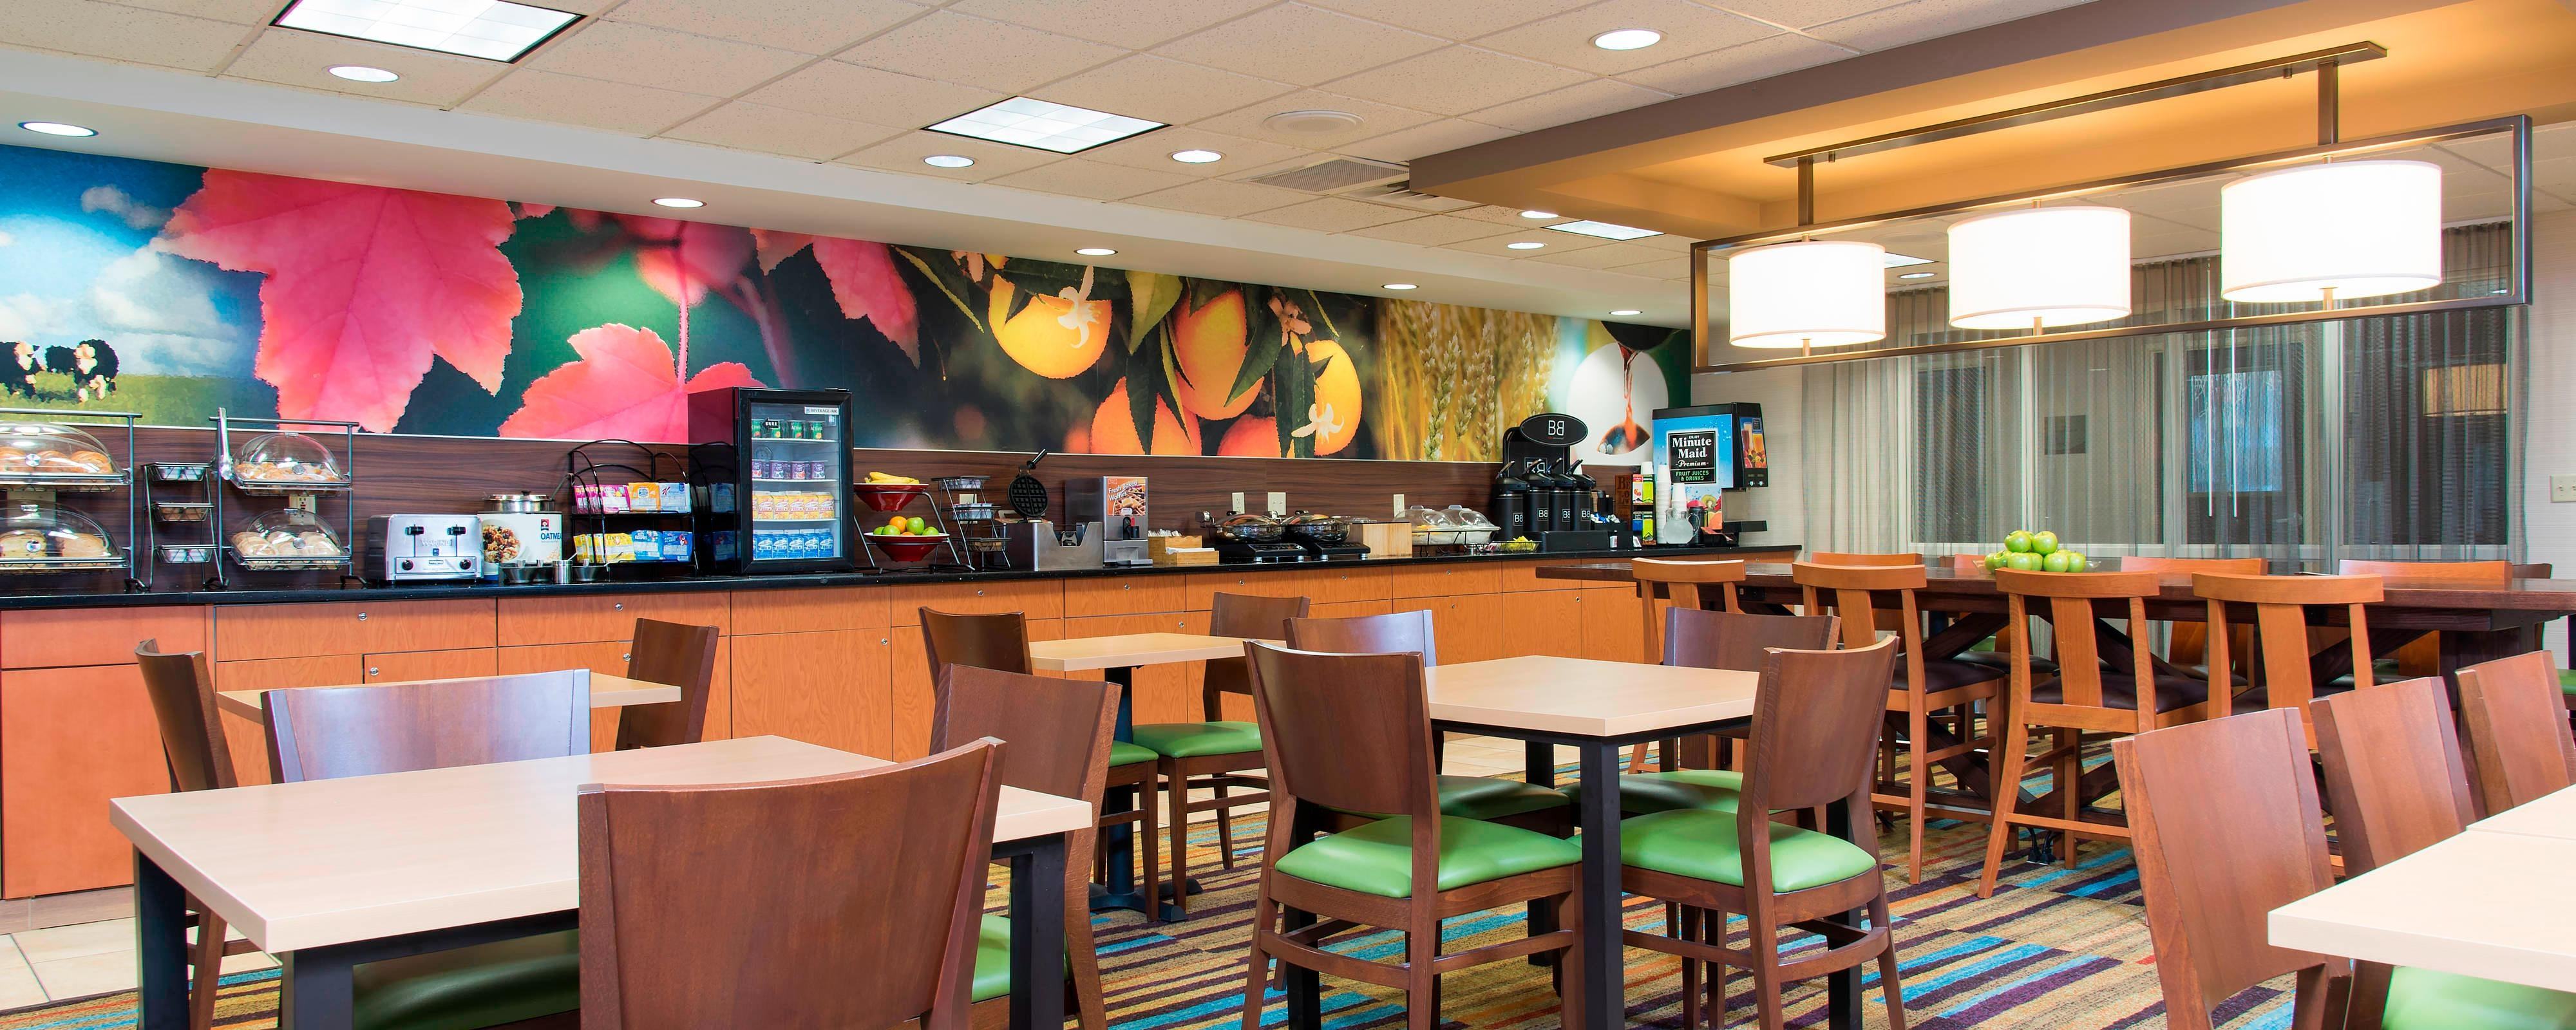 Okemos hotel restaurants | Fairfield Inn East Lansing Dining ...